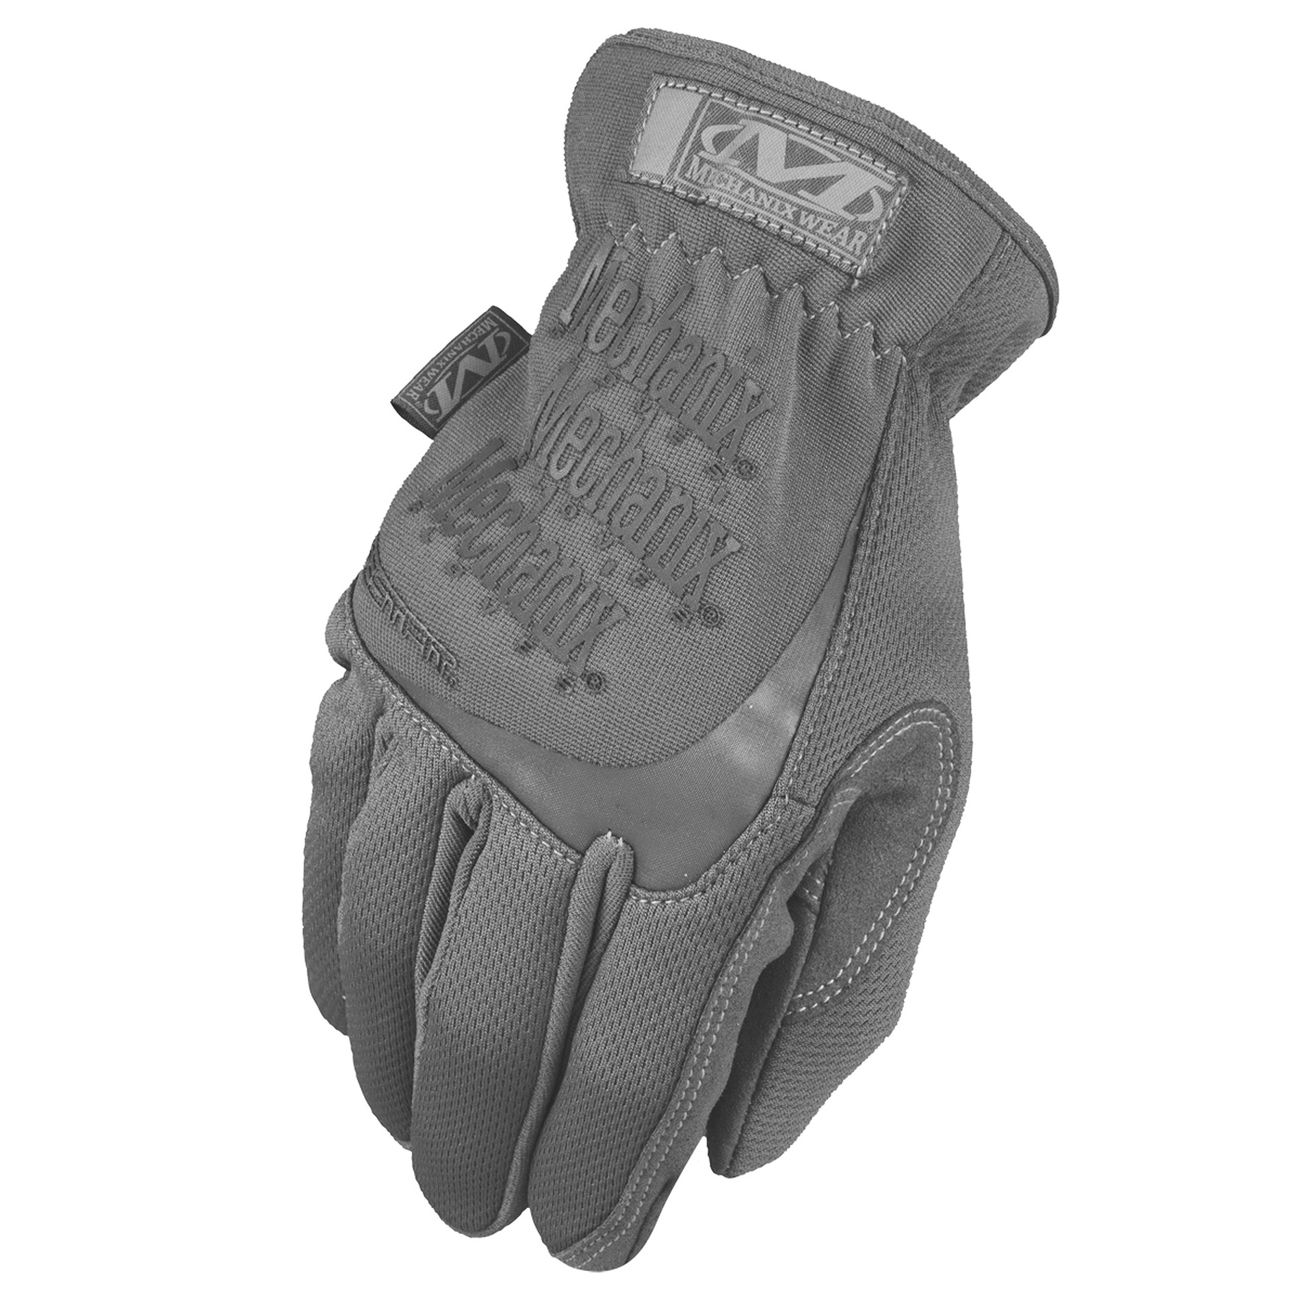 Mechanix Wear FastFit Glove Handschuhe grau 0